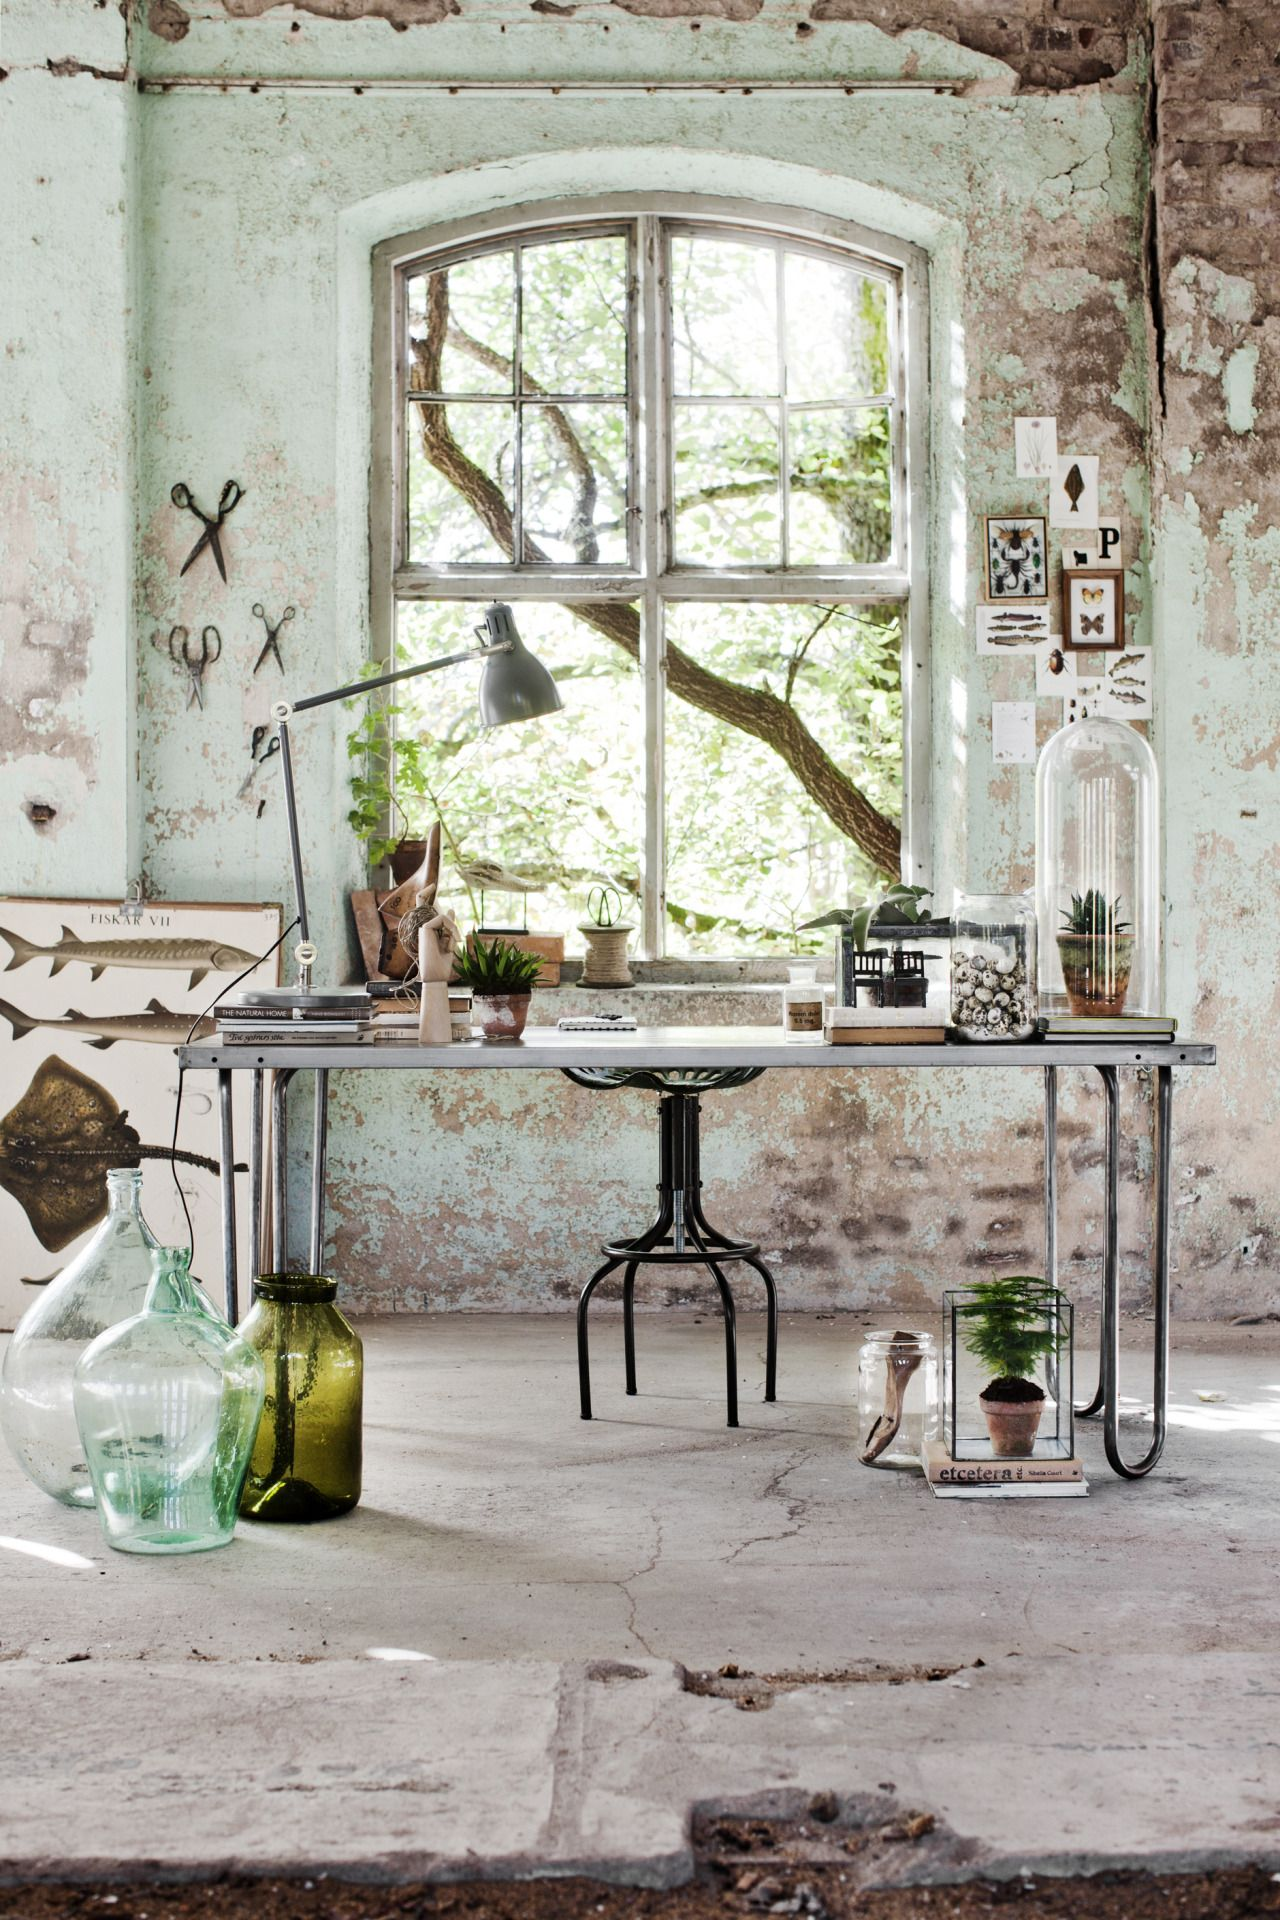 Chic and creative home office designs that make the most of limited ...